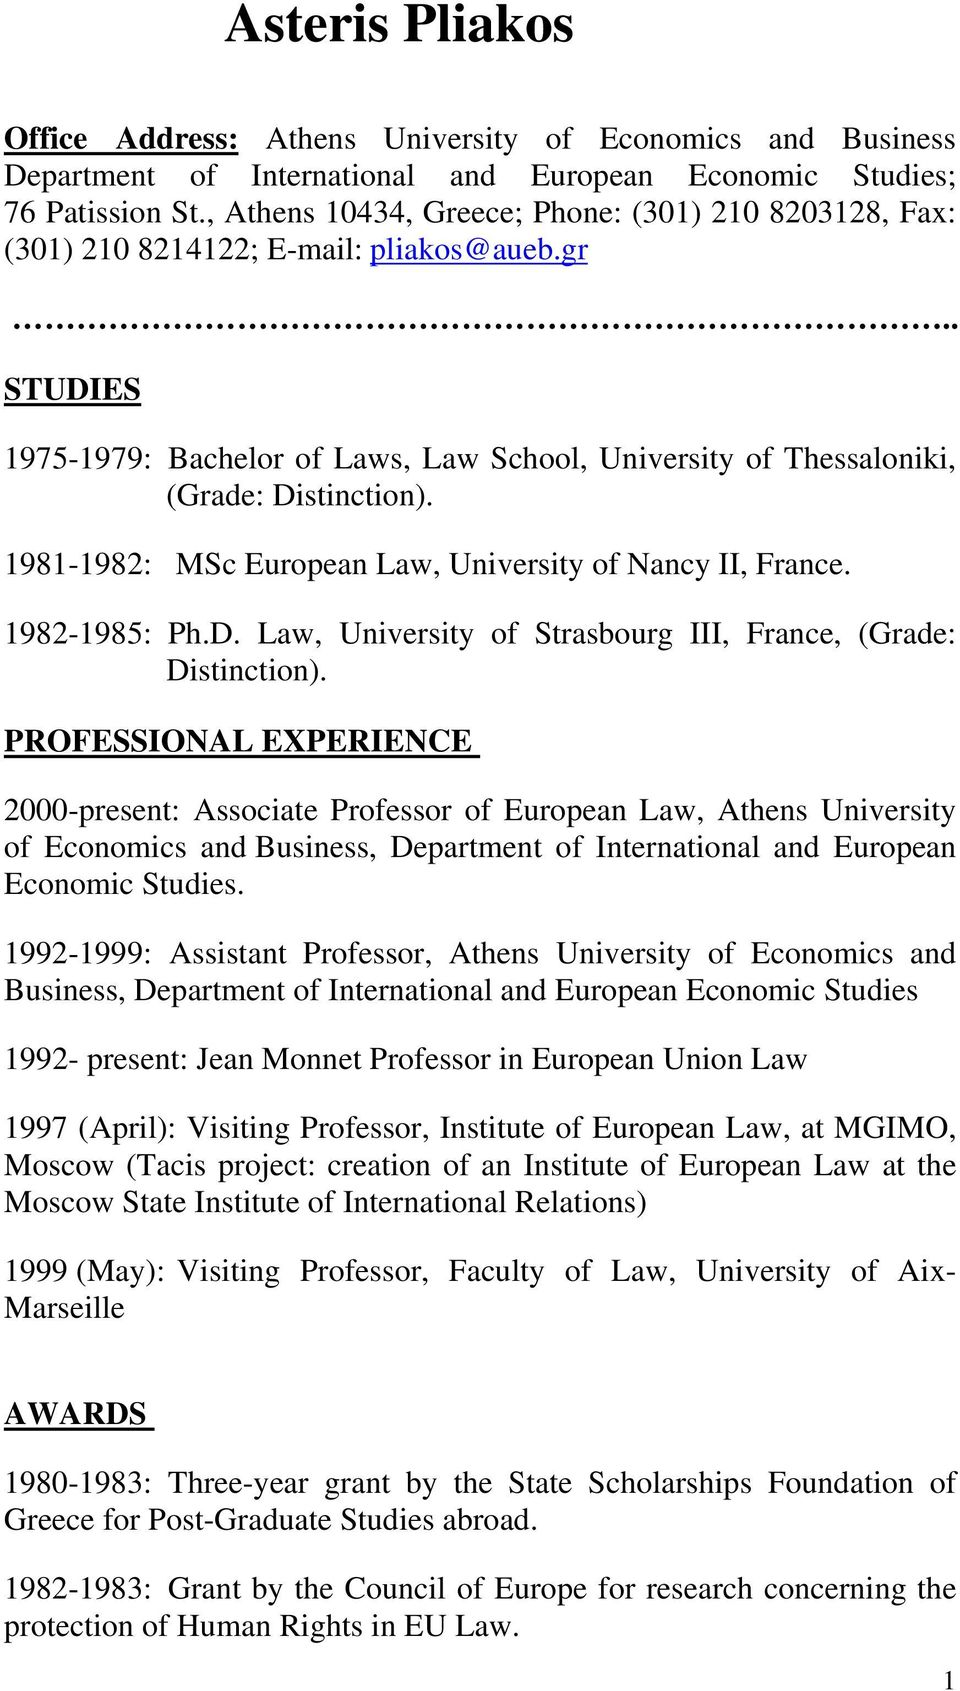 1981-1982: MSc European Law, University of Nancy II, France. 1982-1985: Ph.D. Law, University of Strasbourg III, France, (Grade: Distinction).